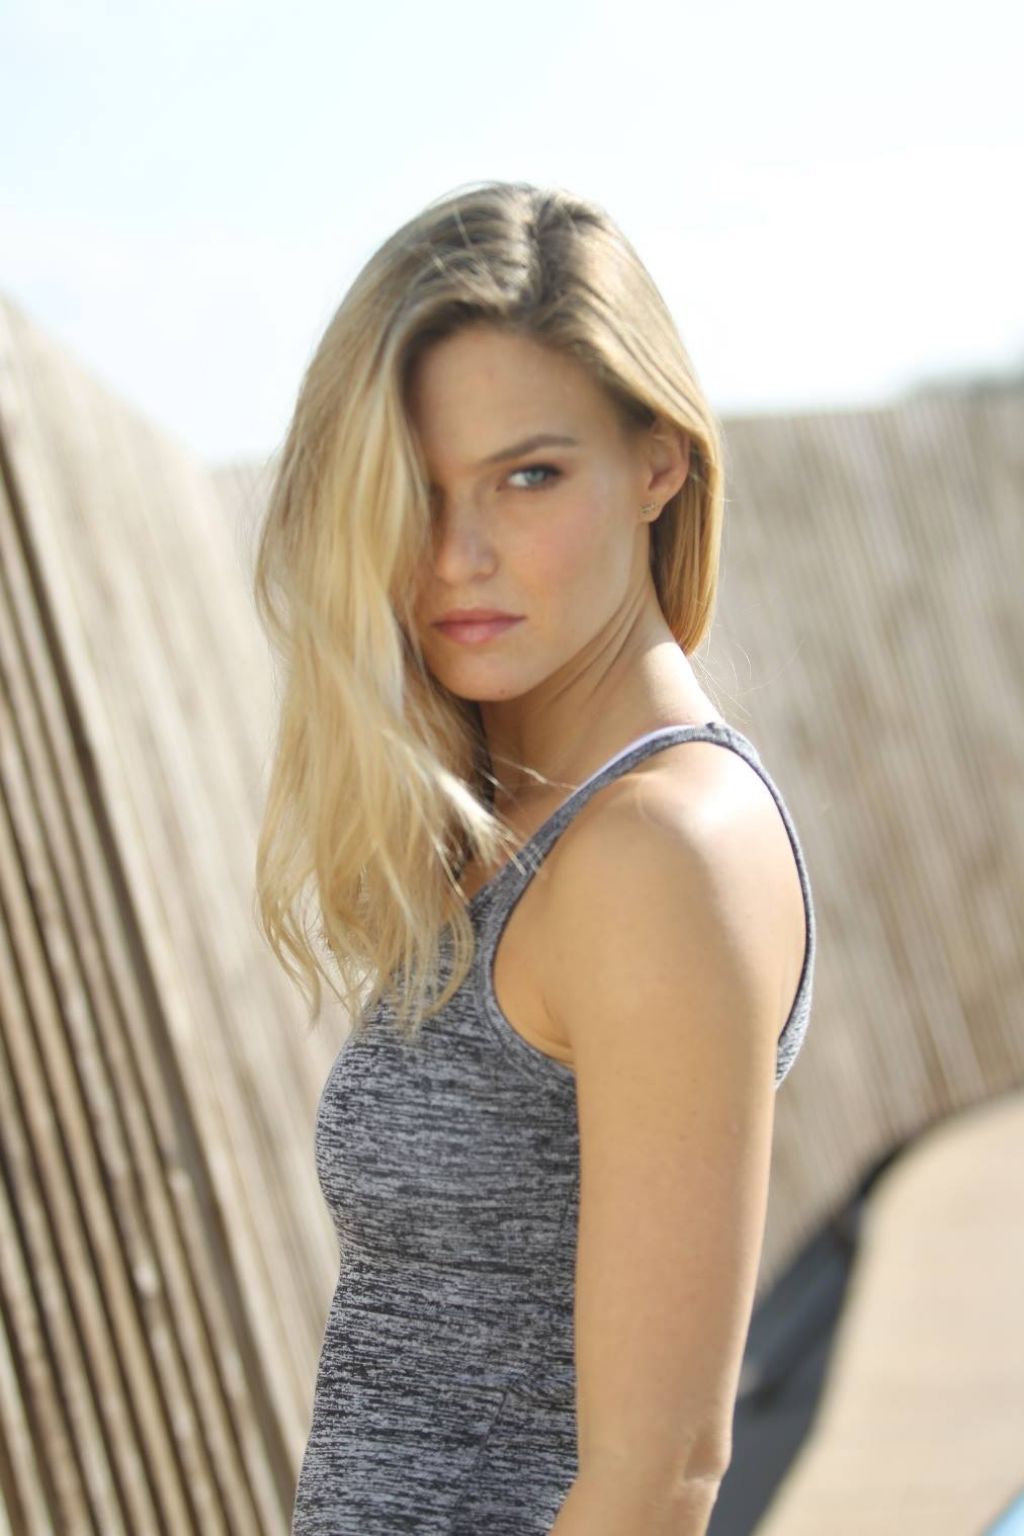 Bar Refaeli Photoshoot... Bar Refaeli